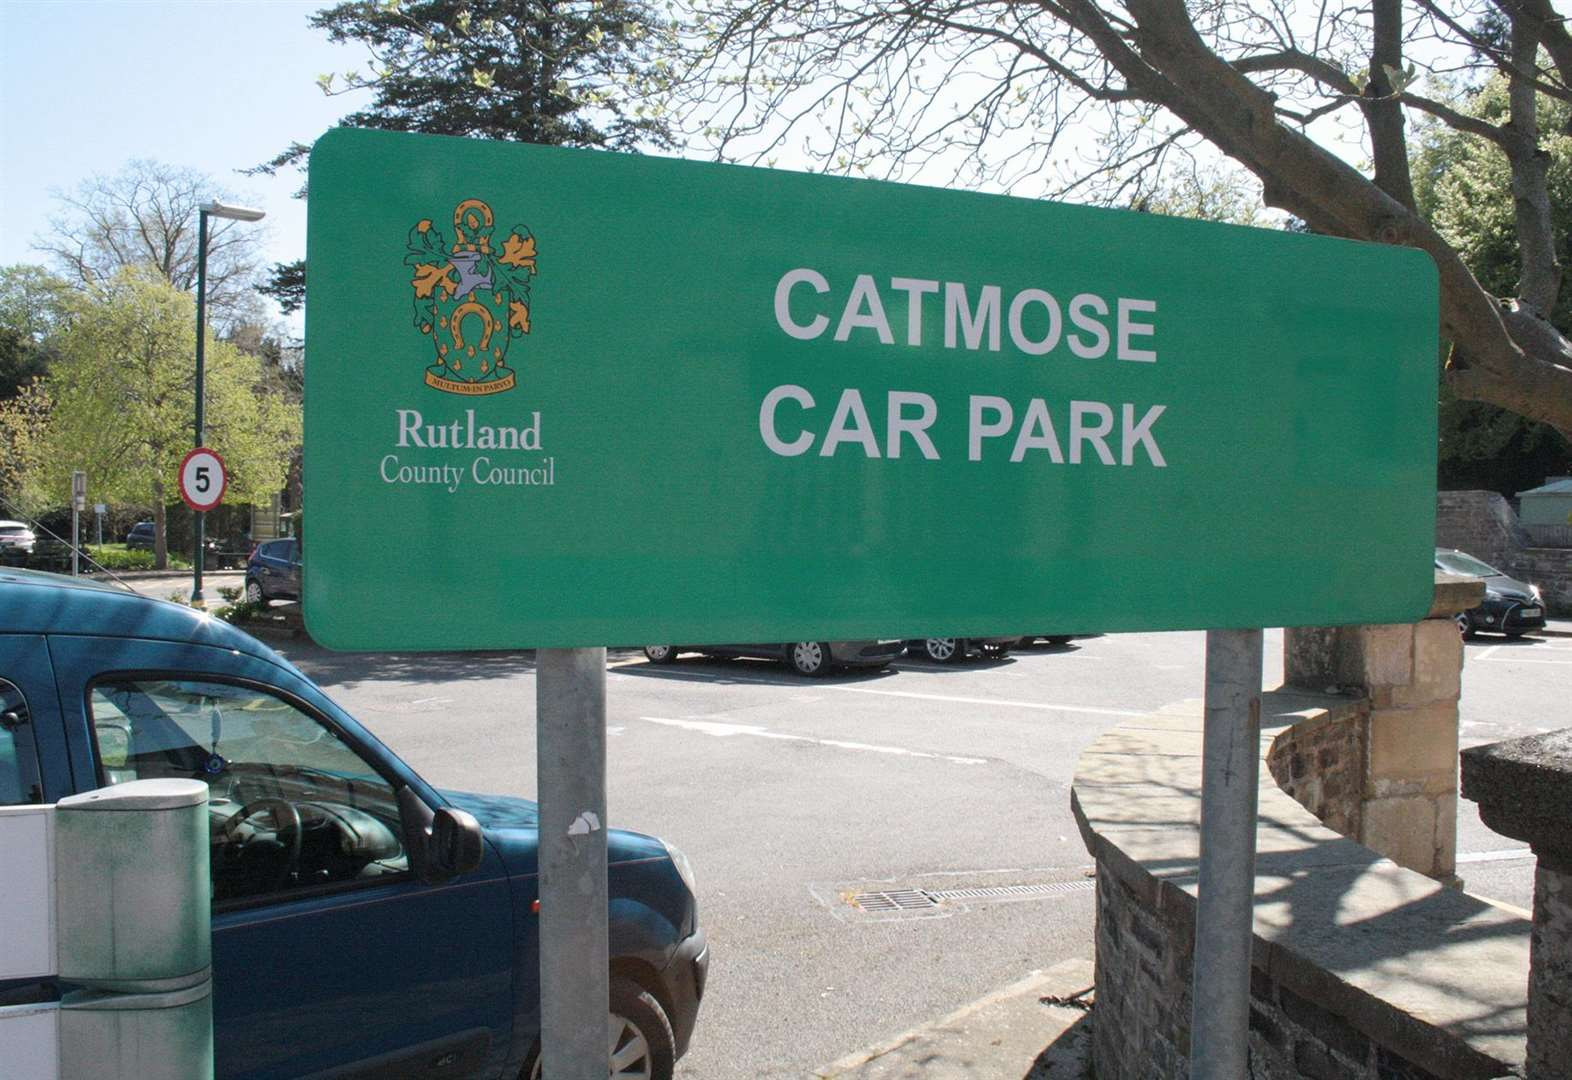 Two hour free car parking introduced on Saturdays in Oakham